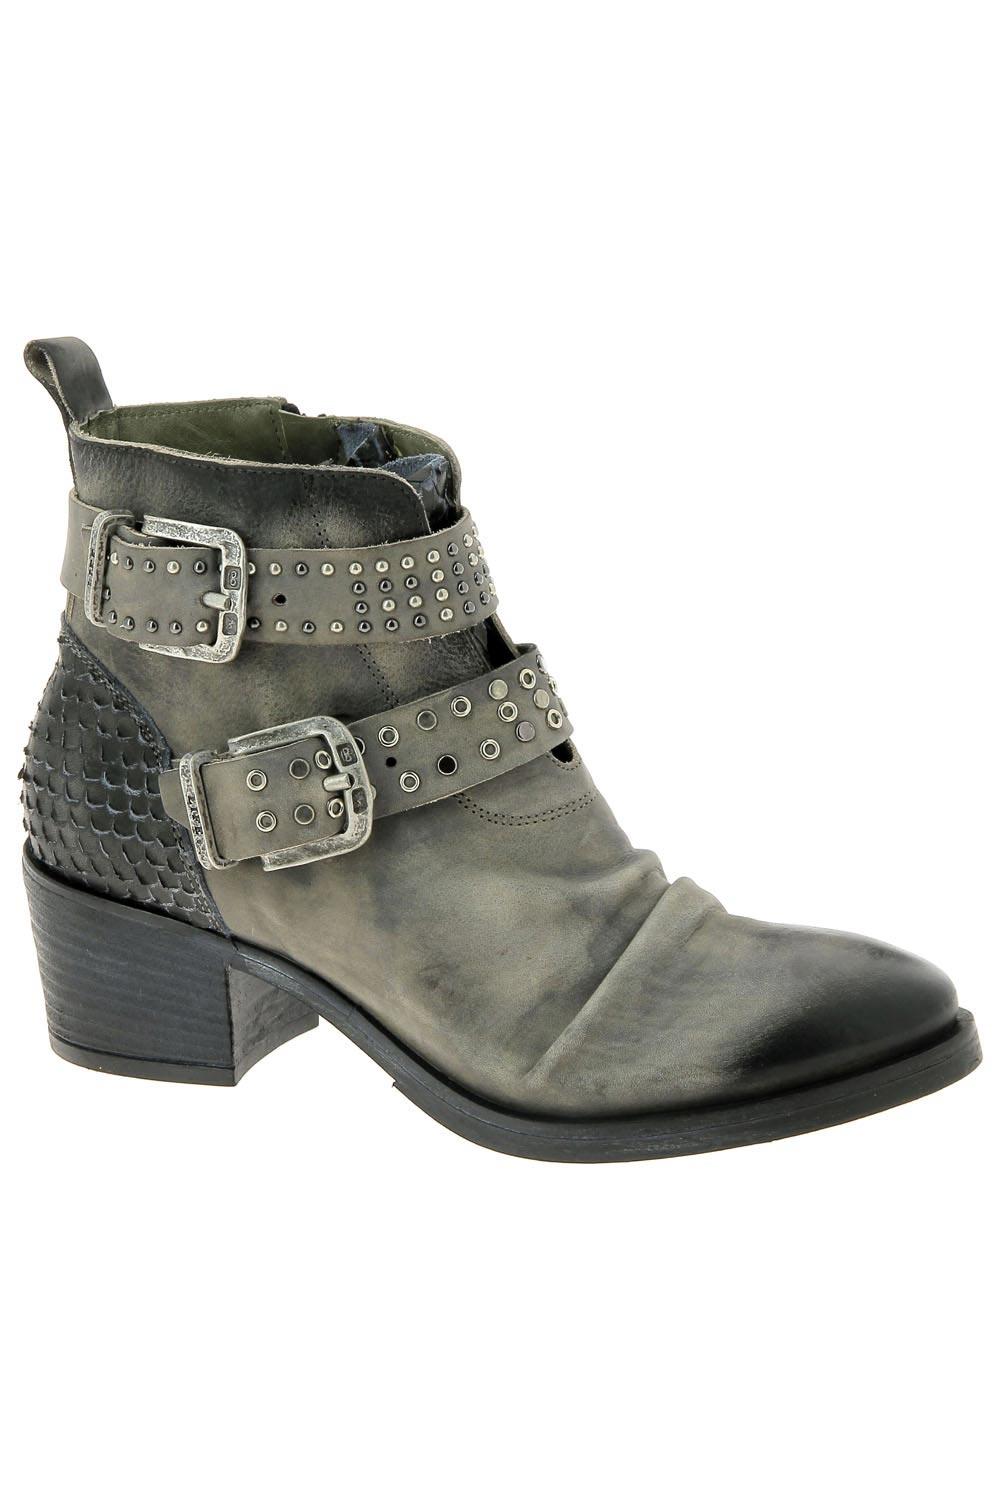 bottines fashion life dak 77 gris